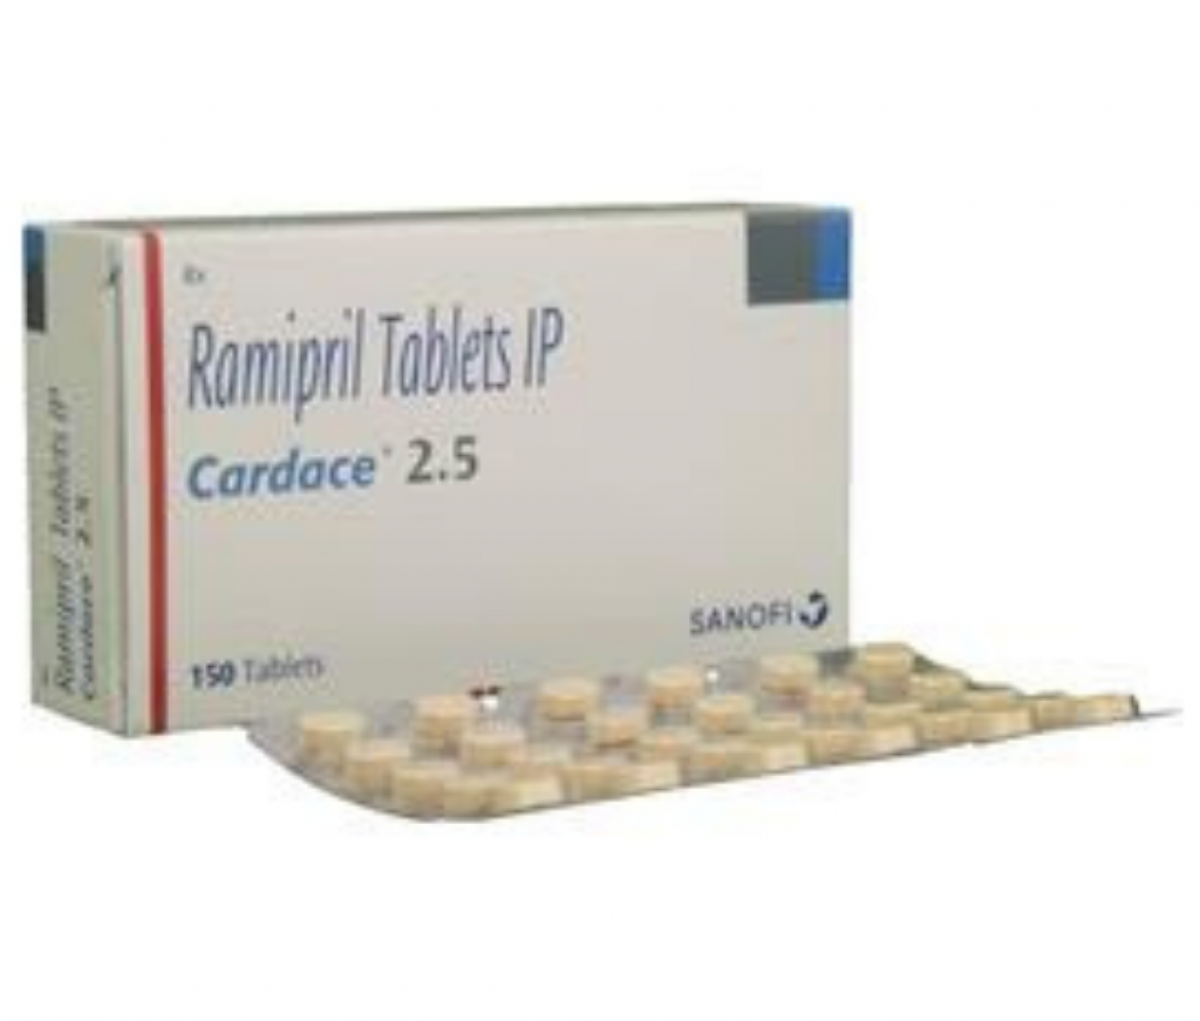 Cardace 2.5mg Tablet